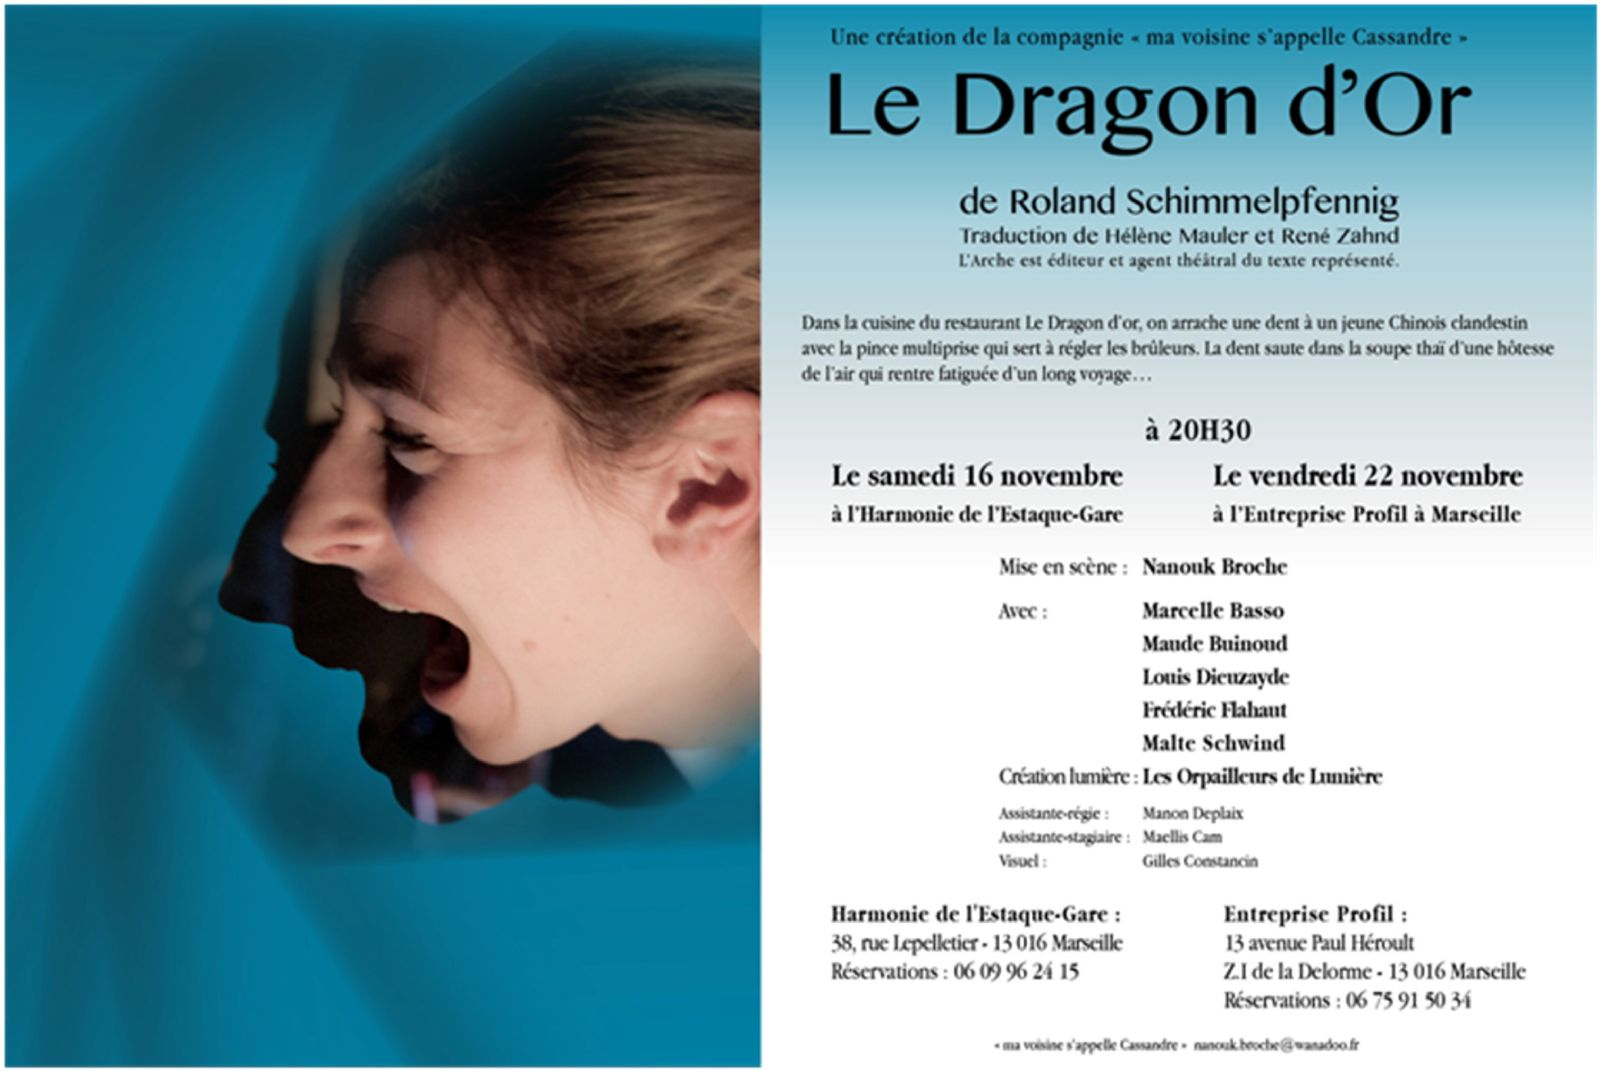 Théatre à l'Harmonie - Dragon d'or